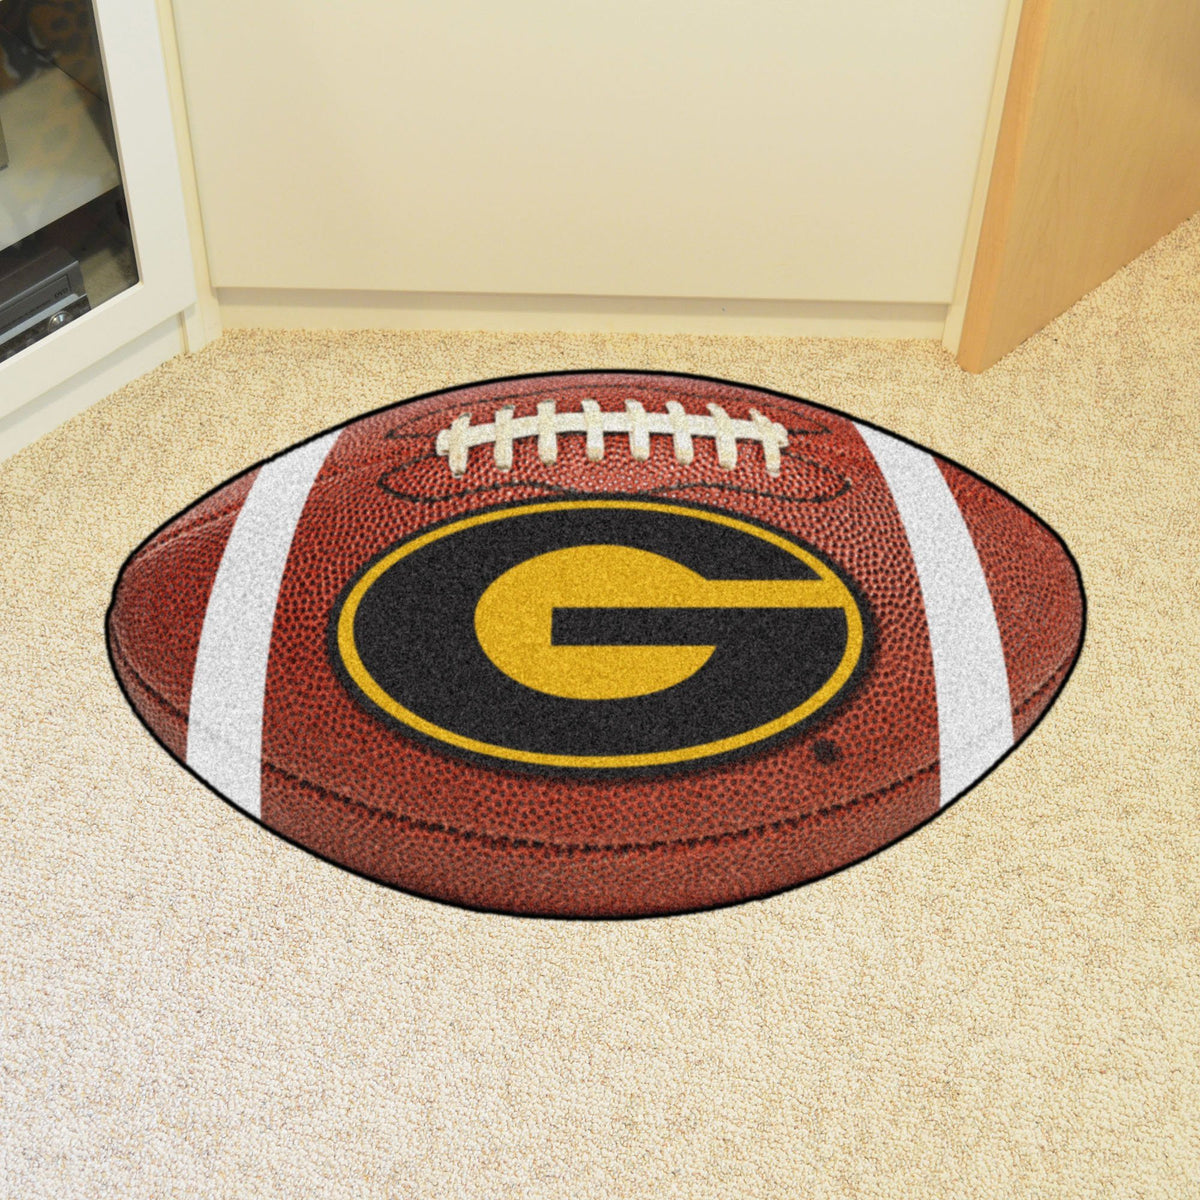 Collegiate - Football Mat: A - K Collegiate Mats, Rectangular Mats, Football Mat, Collegiate, Home Fan Mats Grambling